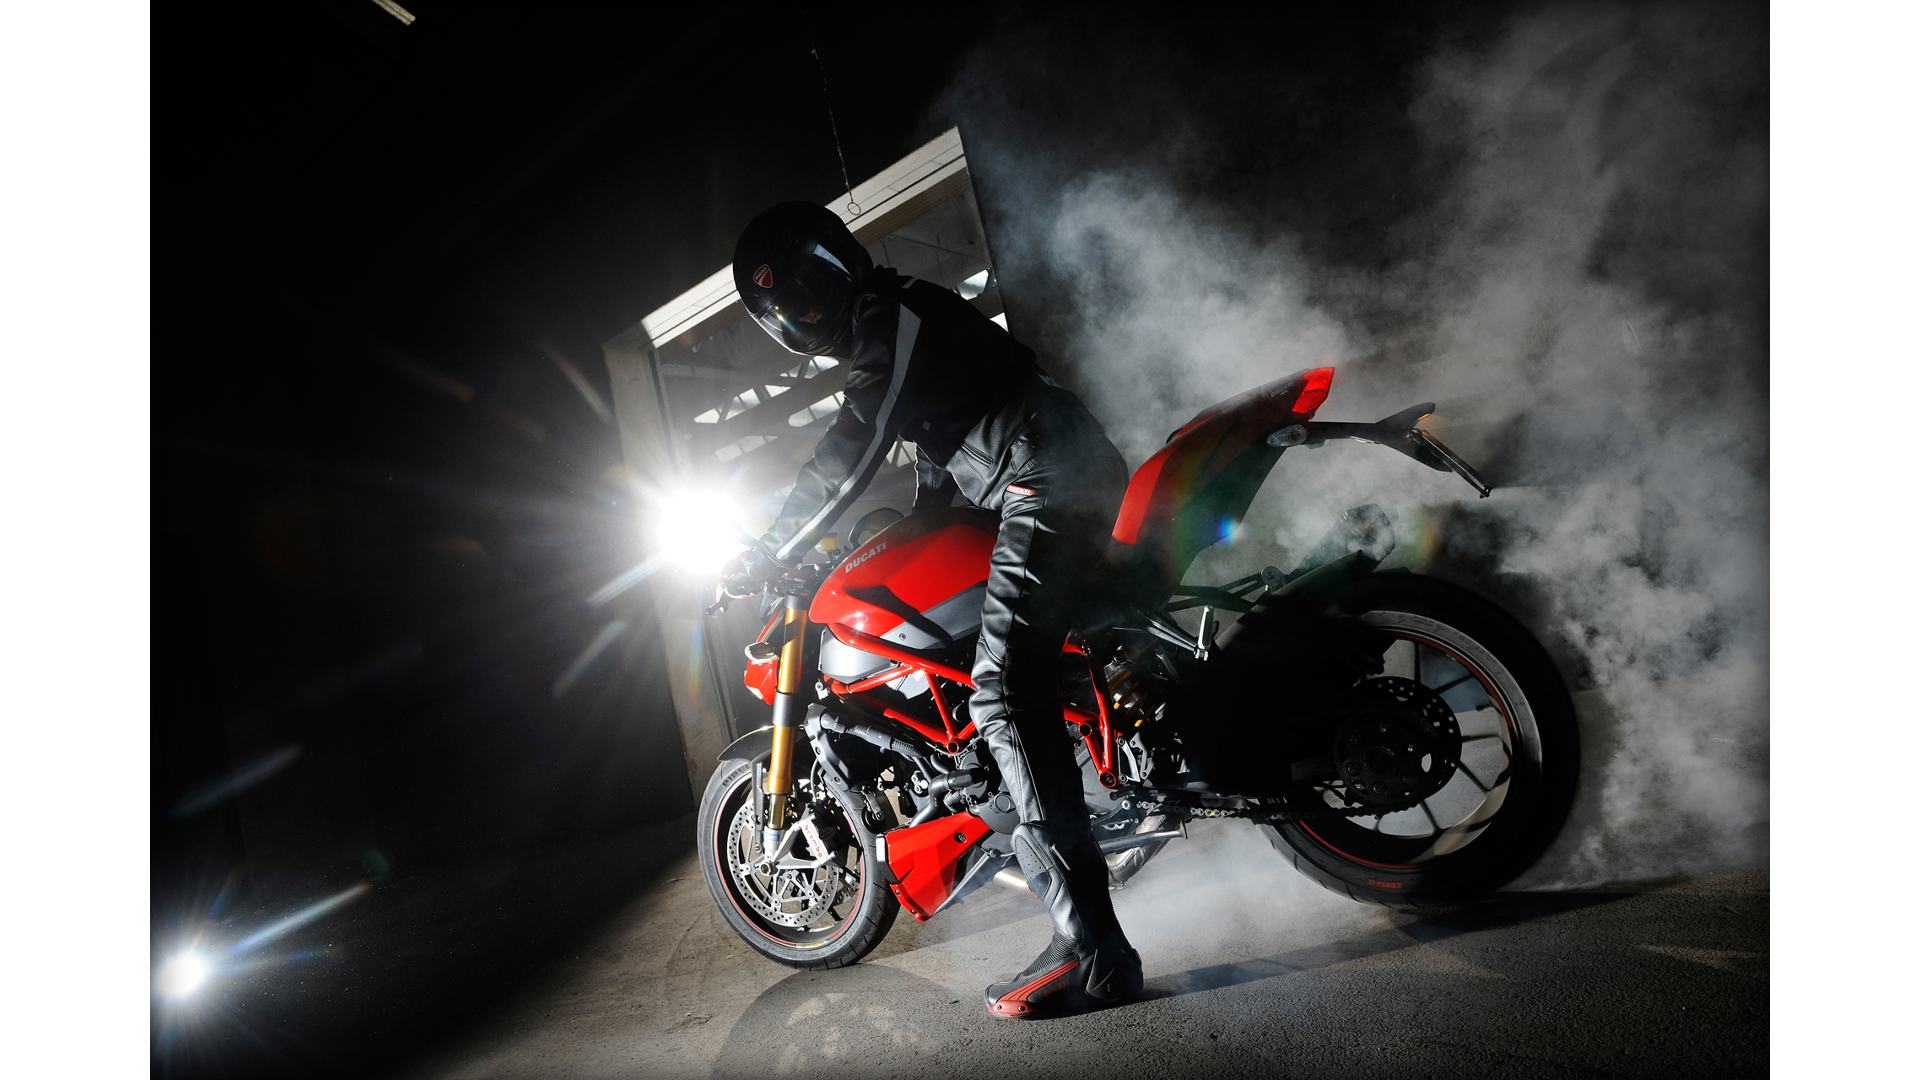 ducati wallpapers, photos and desktop backgrounds up to 8k